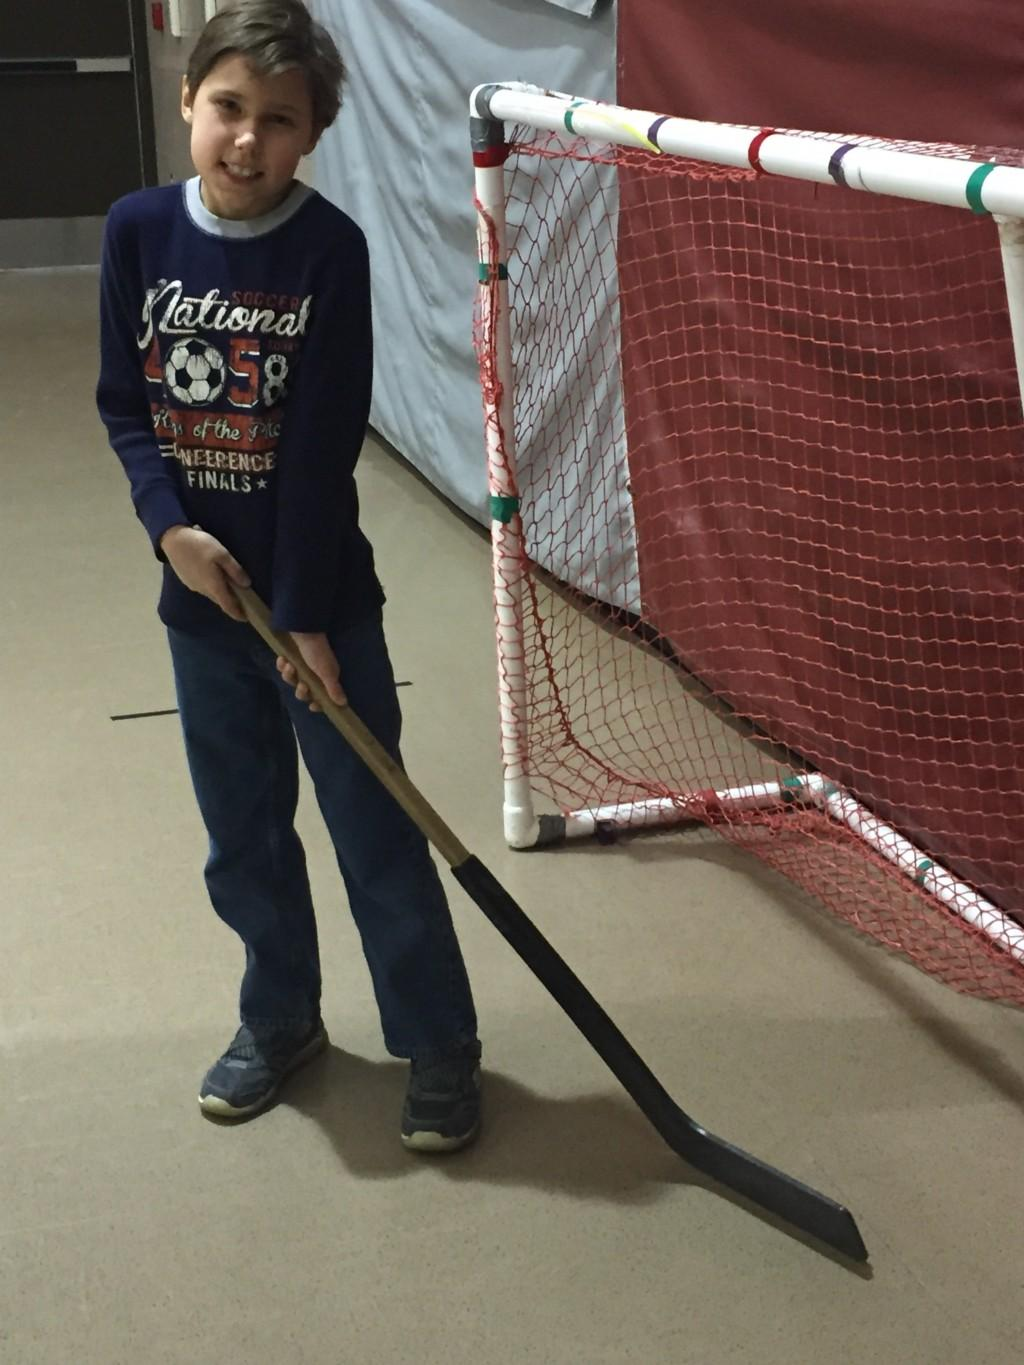 student with hockey stick in gym class